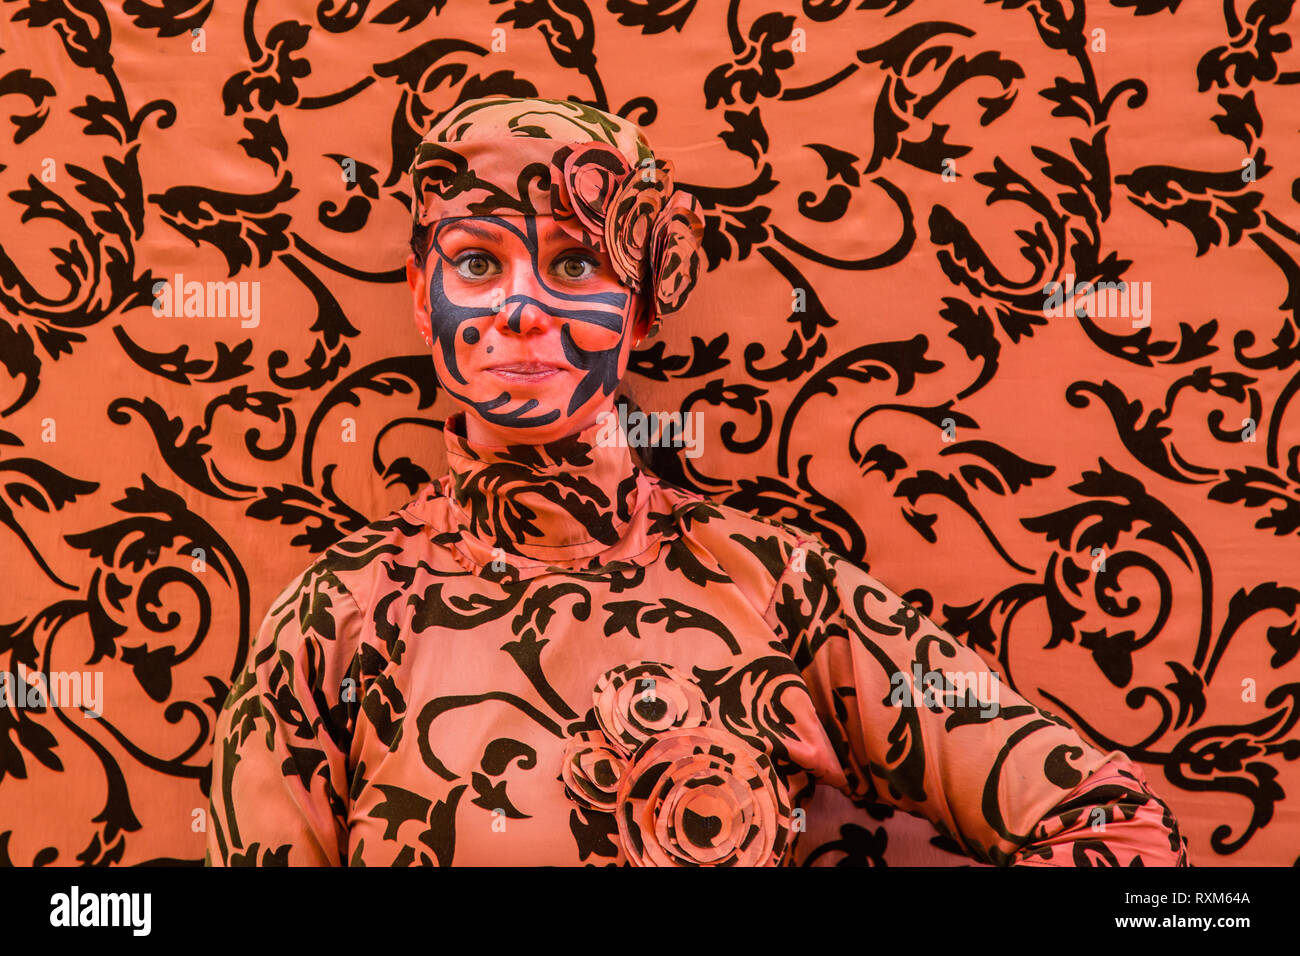 Body Paint Camouflage High Resolution Stock Photography And Images Alamy